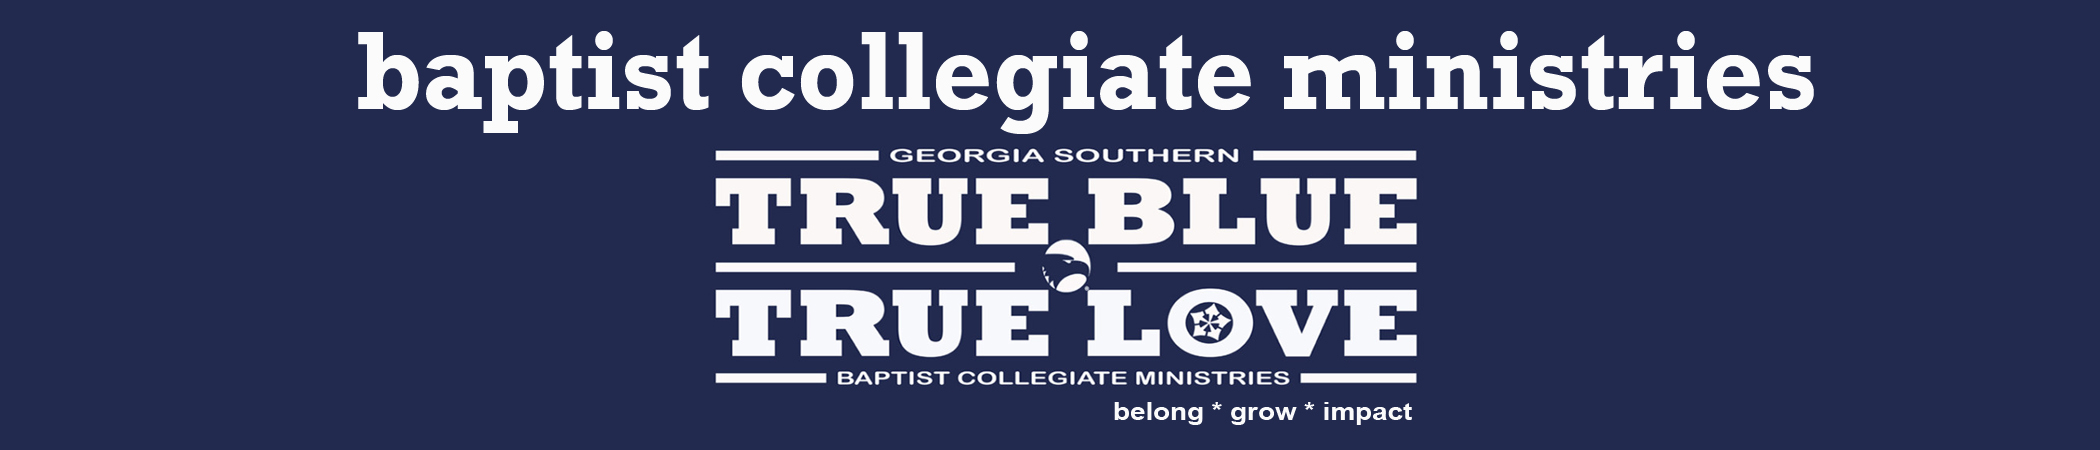 GeorgiaSouthernBCM | Baptist Collegiate Ministries